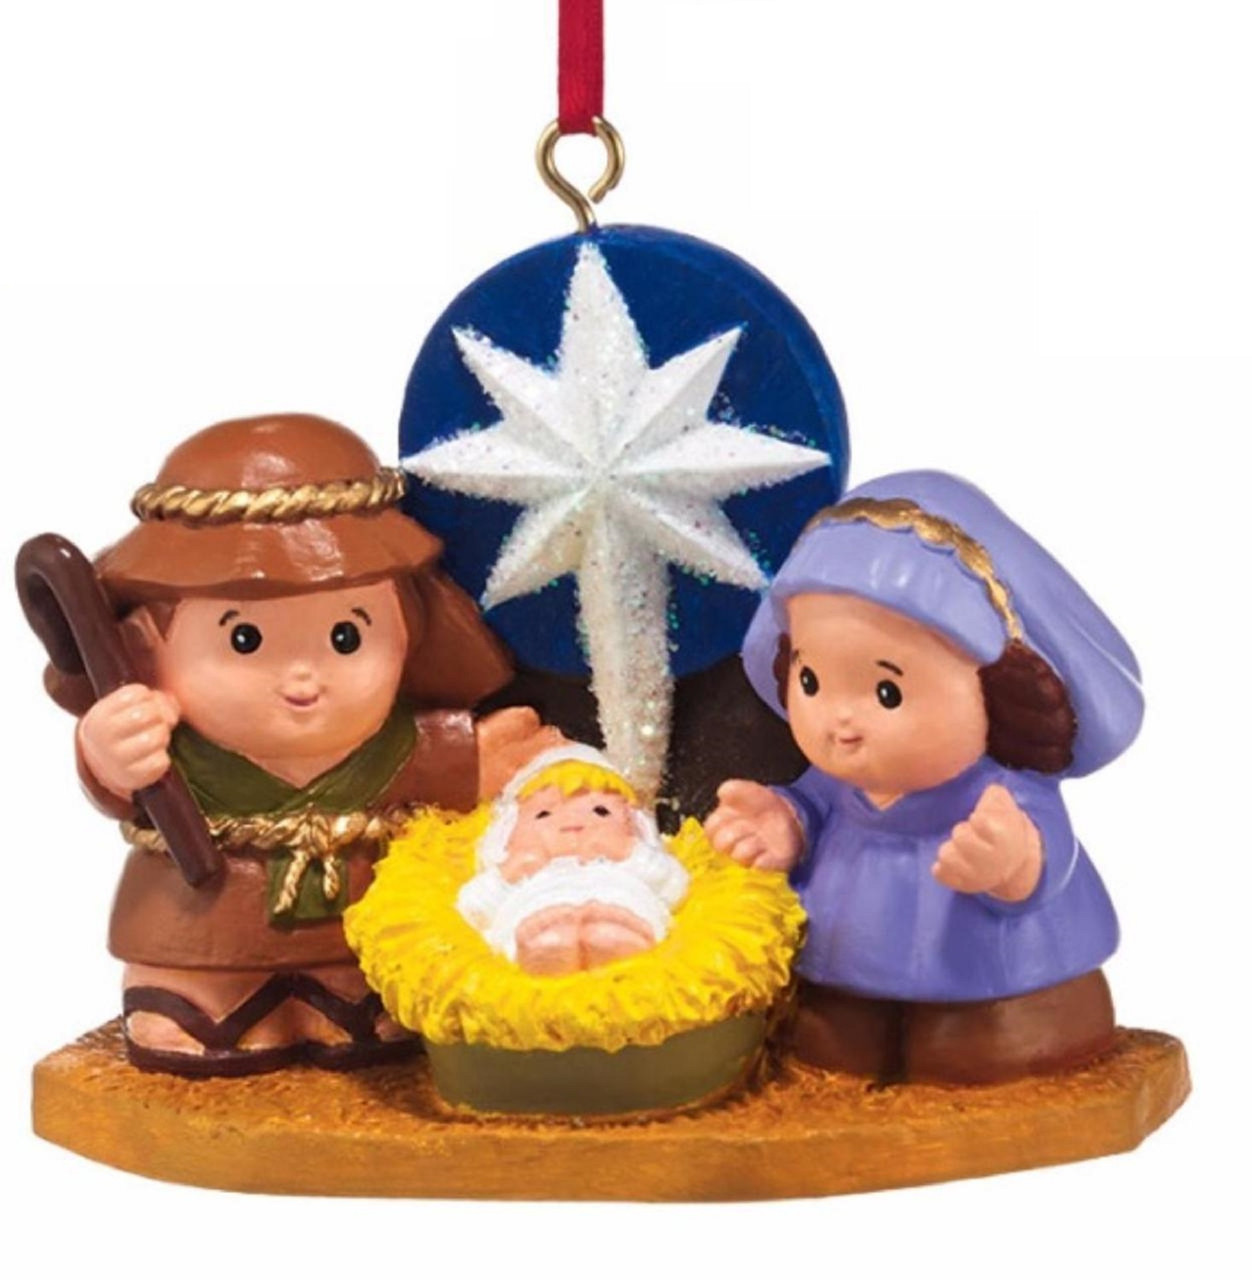 department 56 fisher price little people nativity christmas ornament 4037443 christmas central